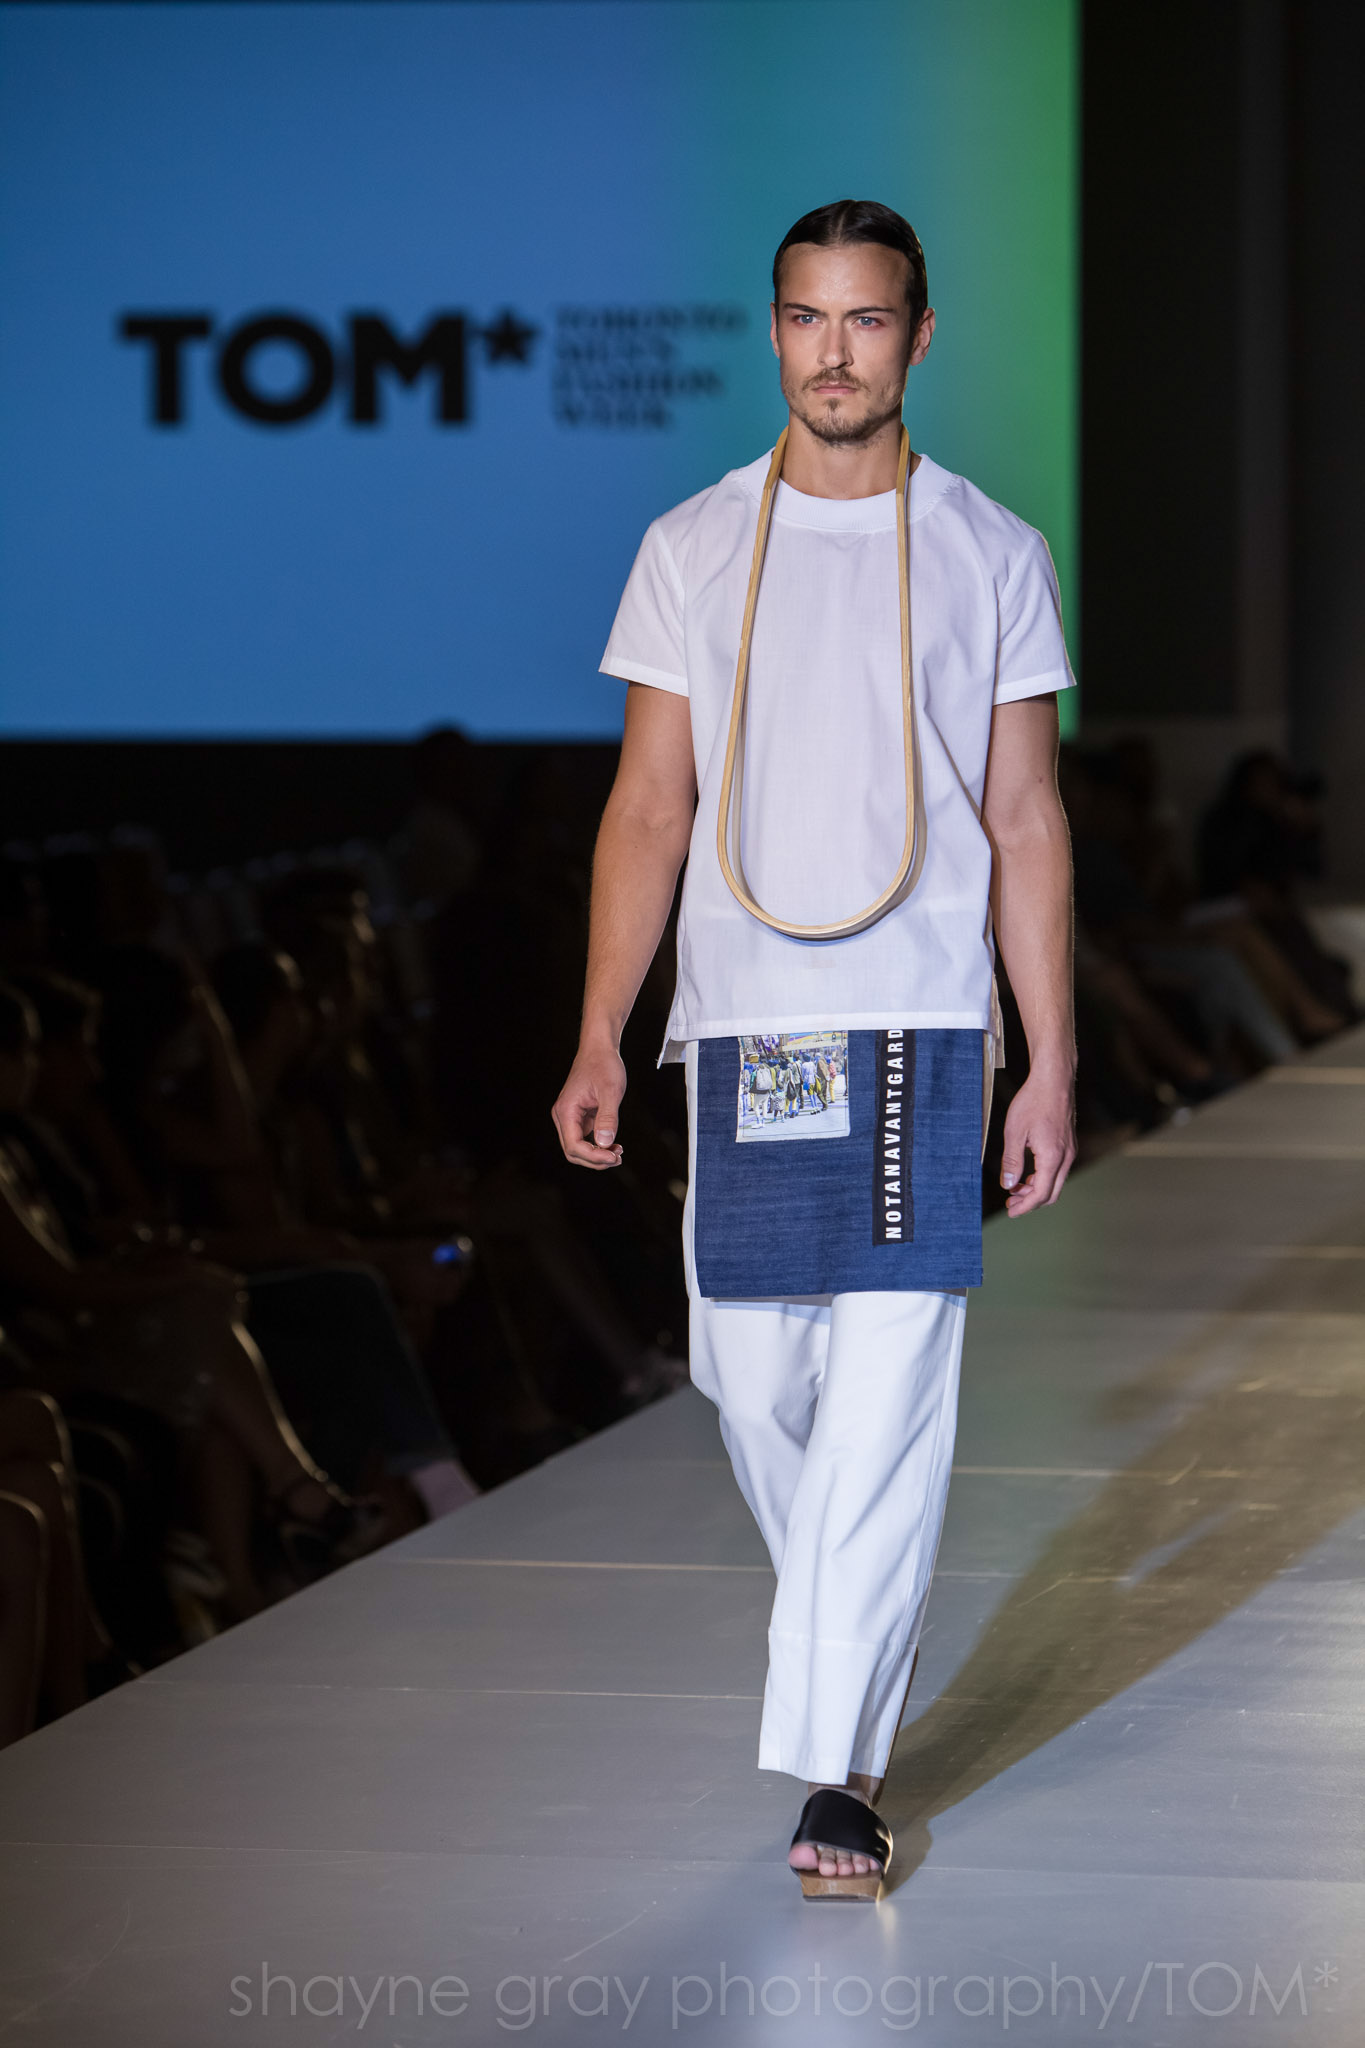 Shayne-Gray-Toronto-men's-fashion_week-TOM-wrkdept-8693.jpg